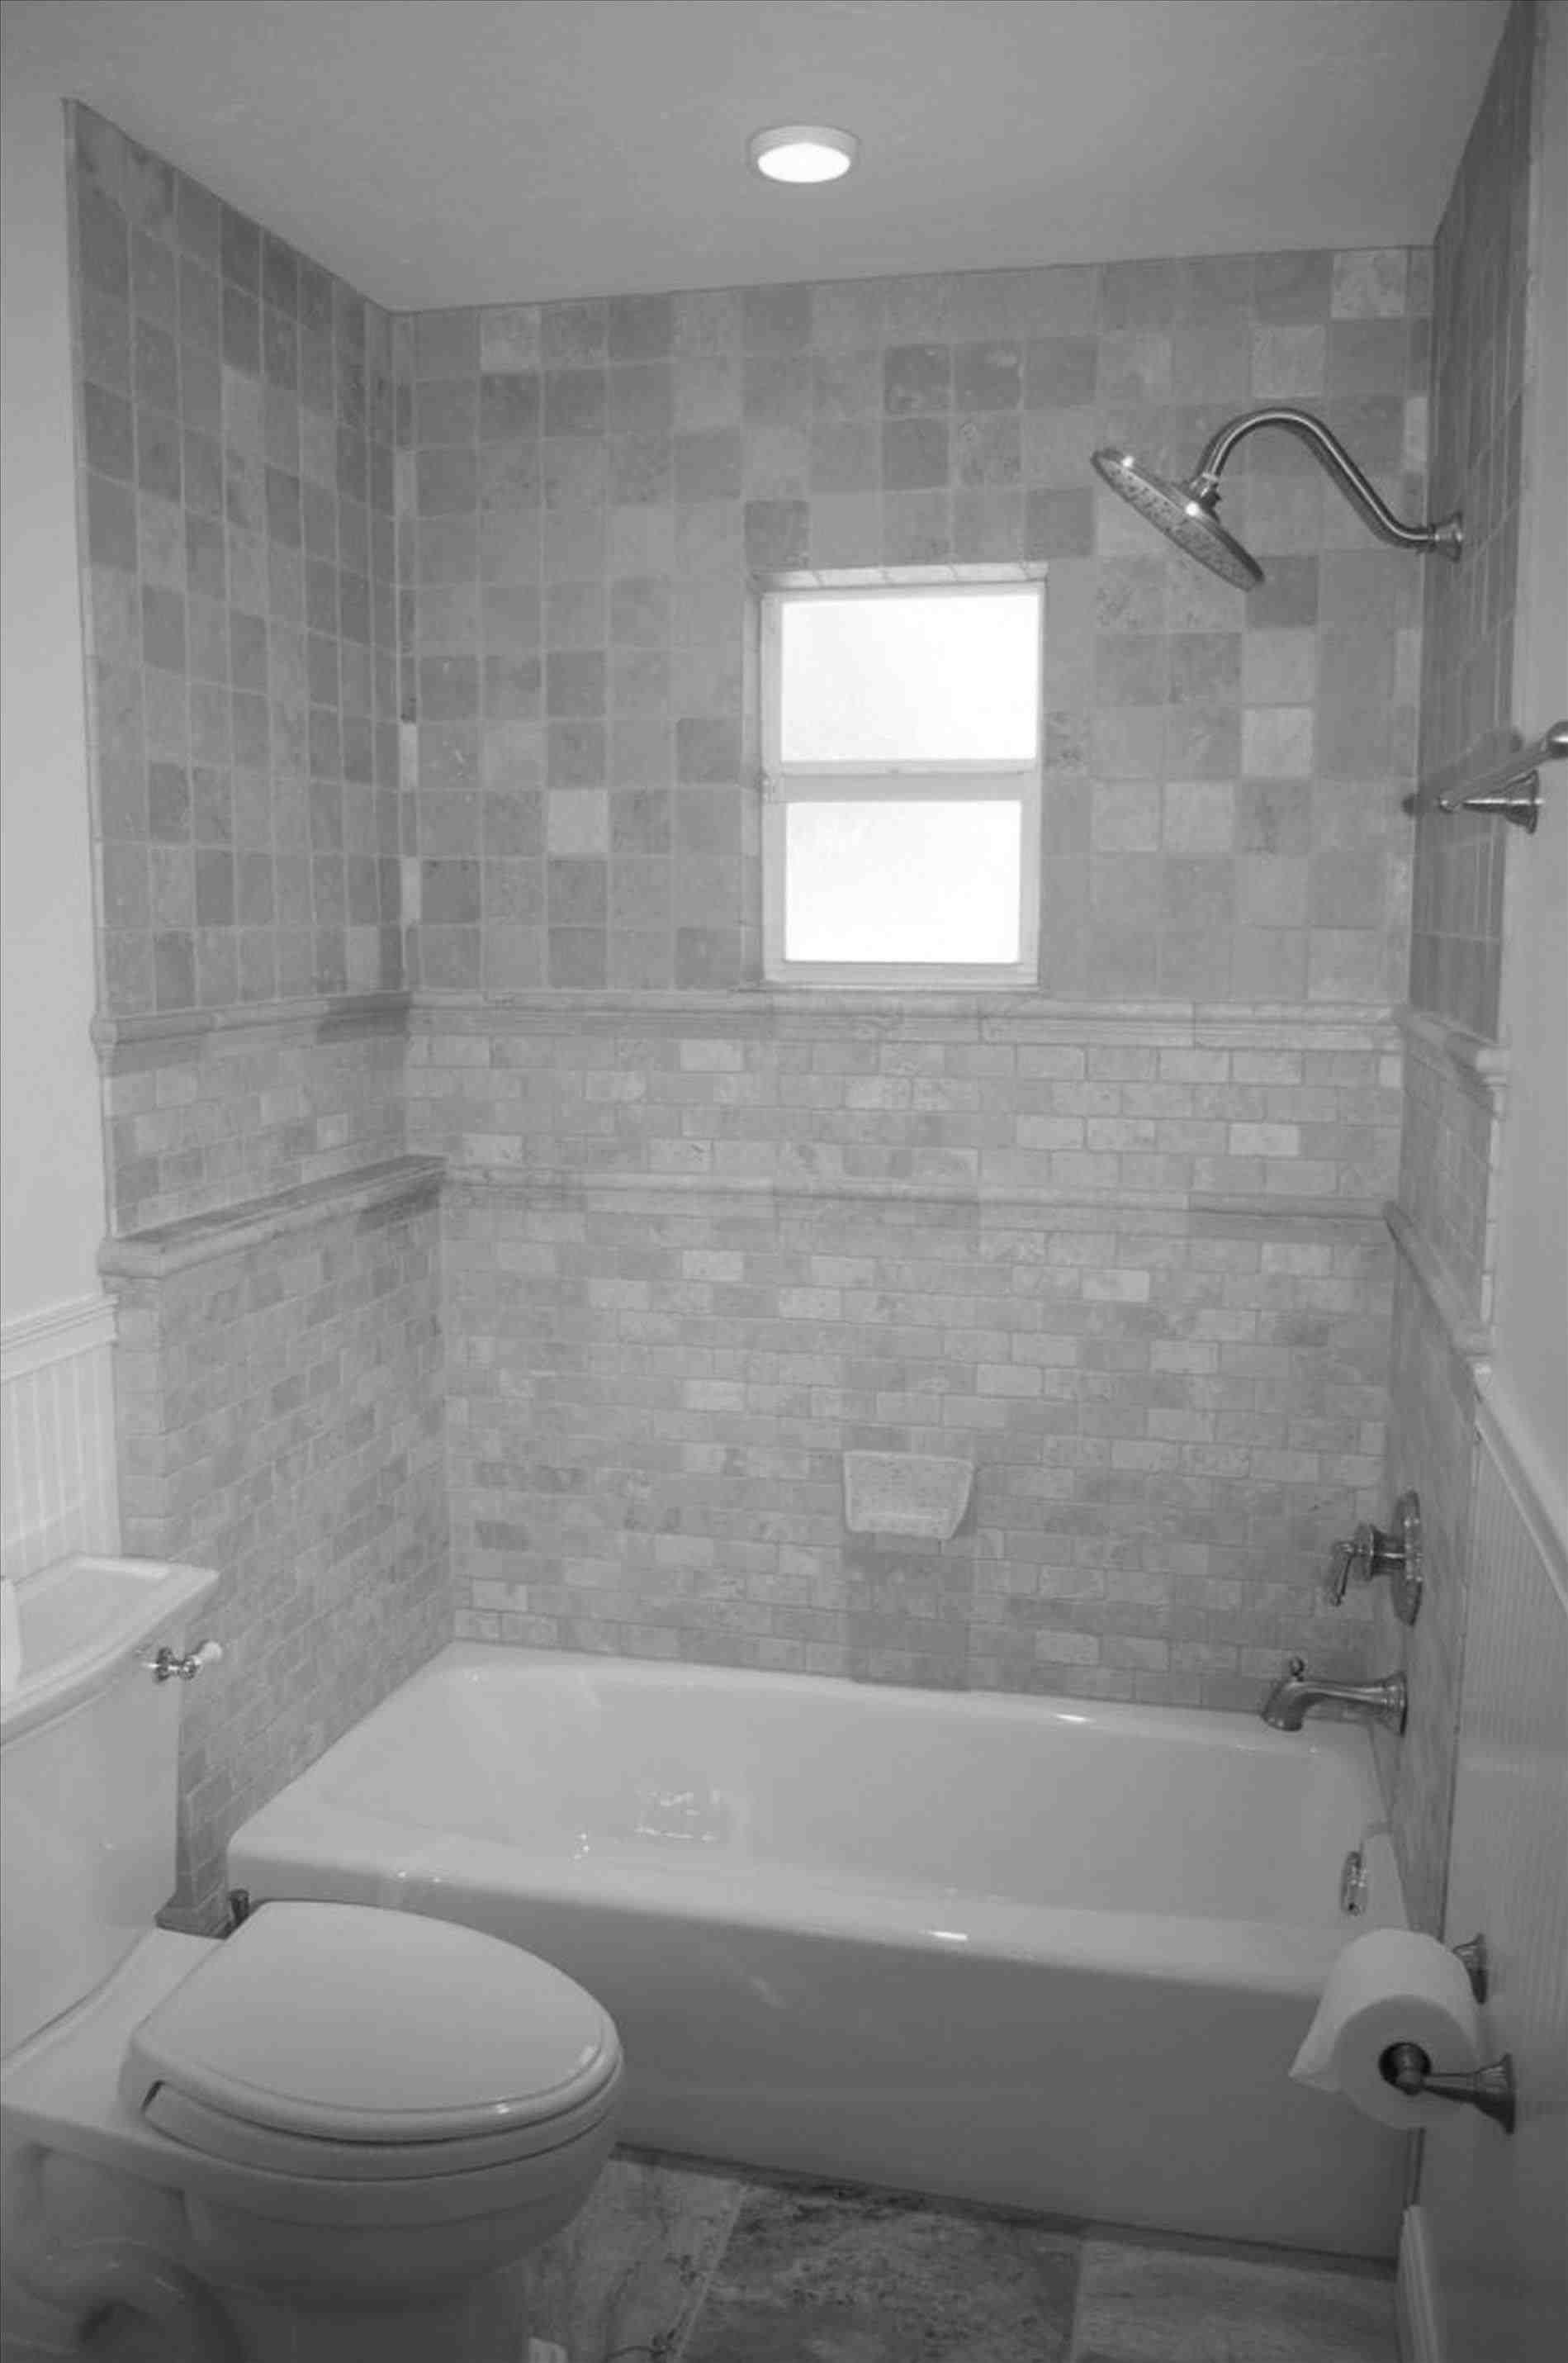 bathtub insert for shower. This Acrylic Tub With Tile Surround - Shower Patterns | Tiled Stalls Tiling A Surround. Click To Enlarge. Weep Hole In Silicone Sealant Bathtub Insert For X